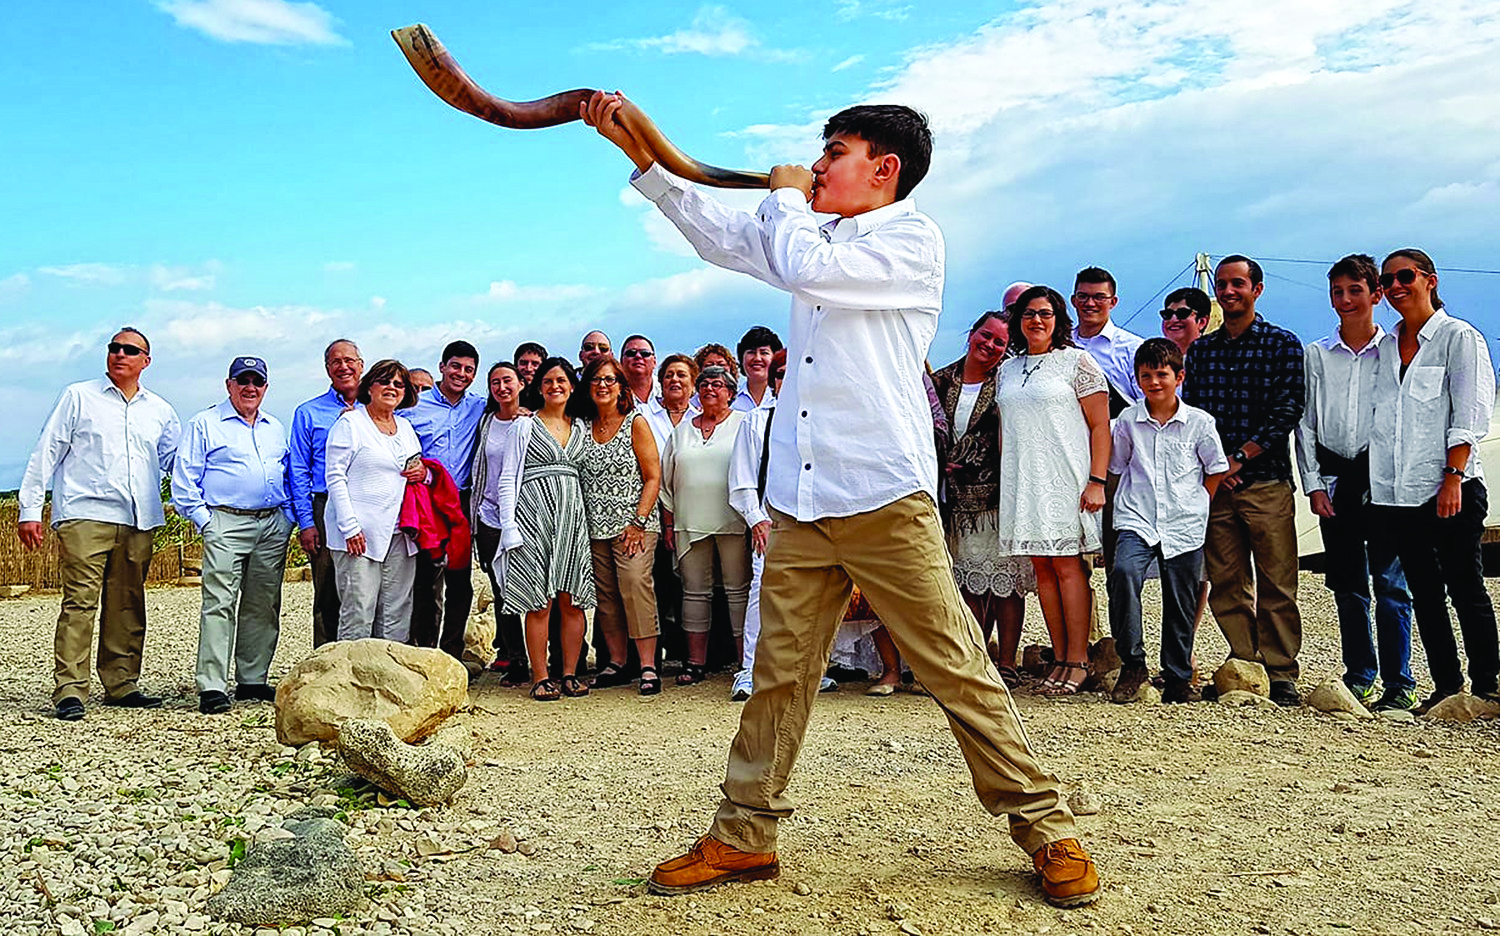 Cooper Sock blows the shofar in front of family and friends in Israel.